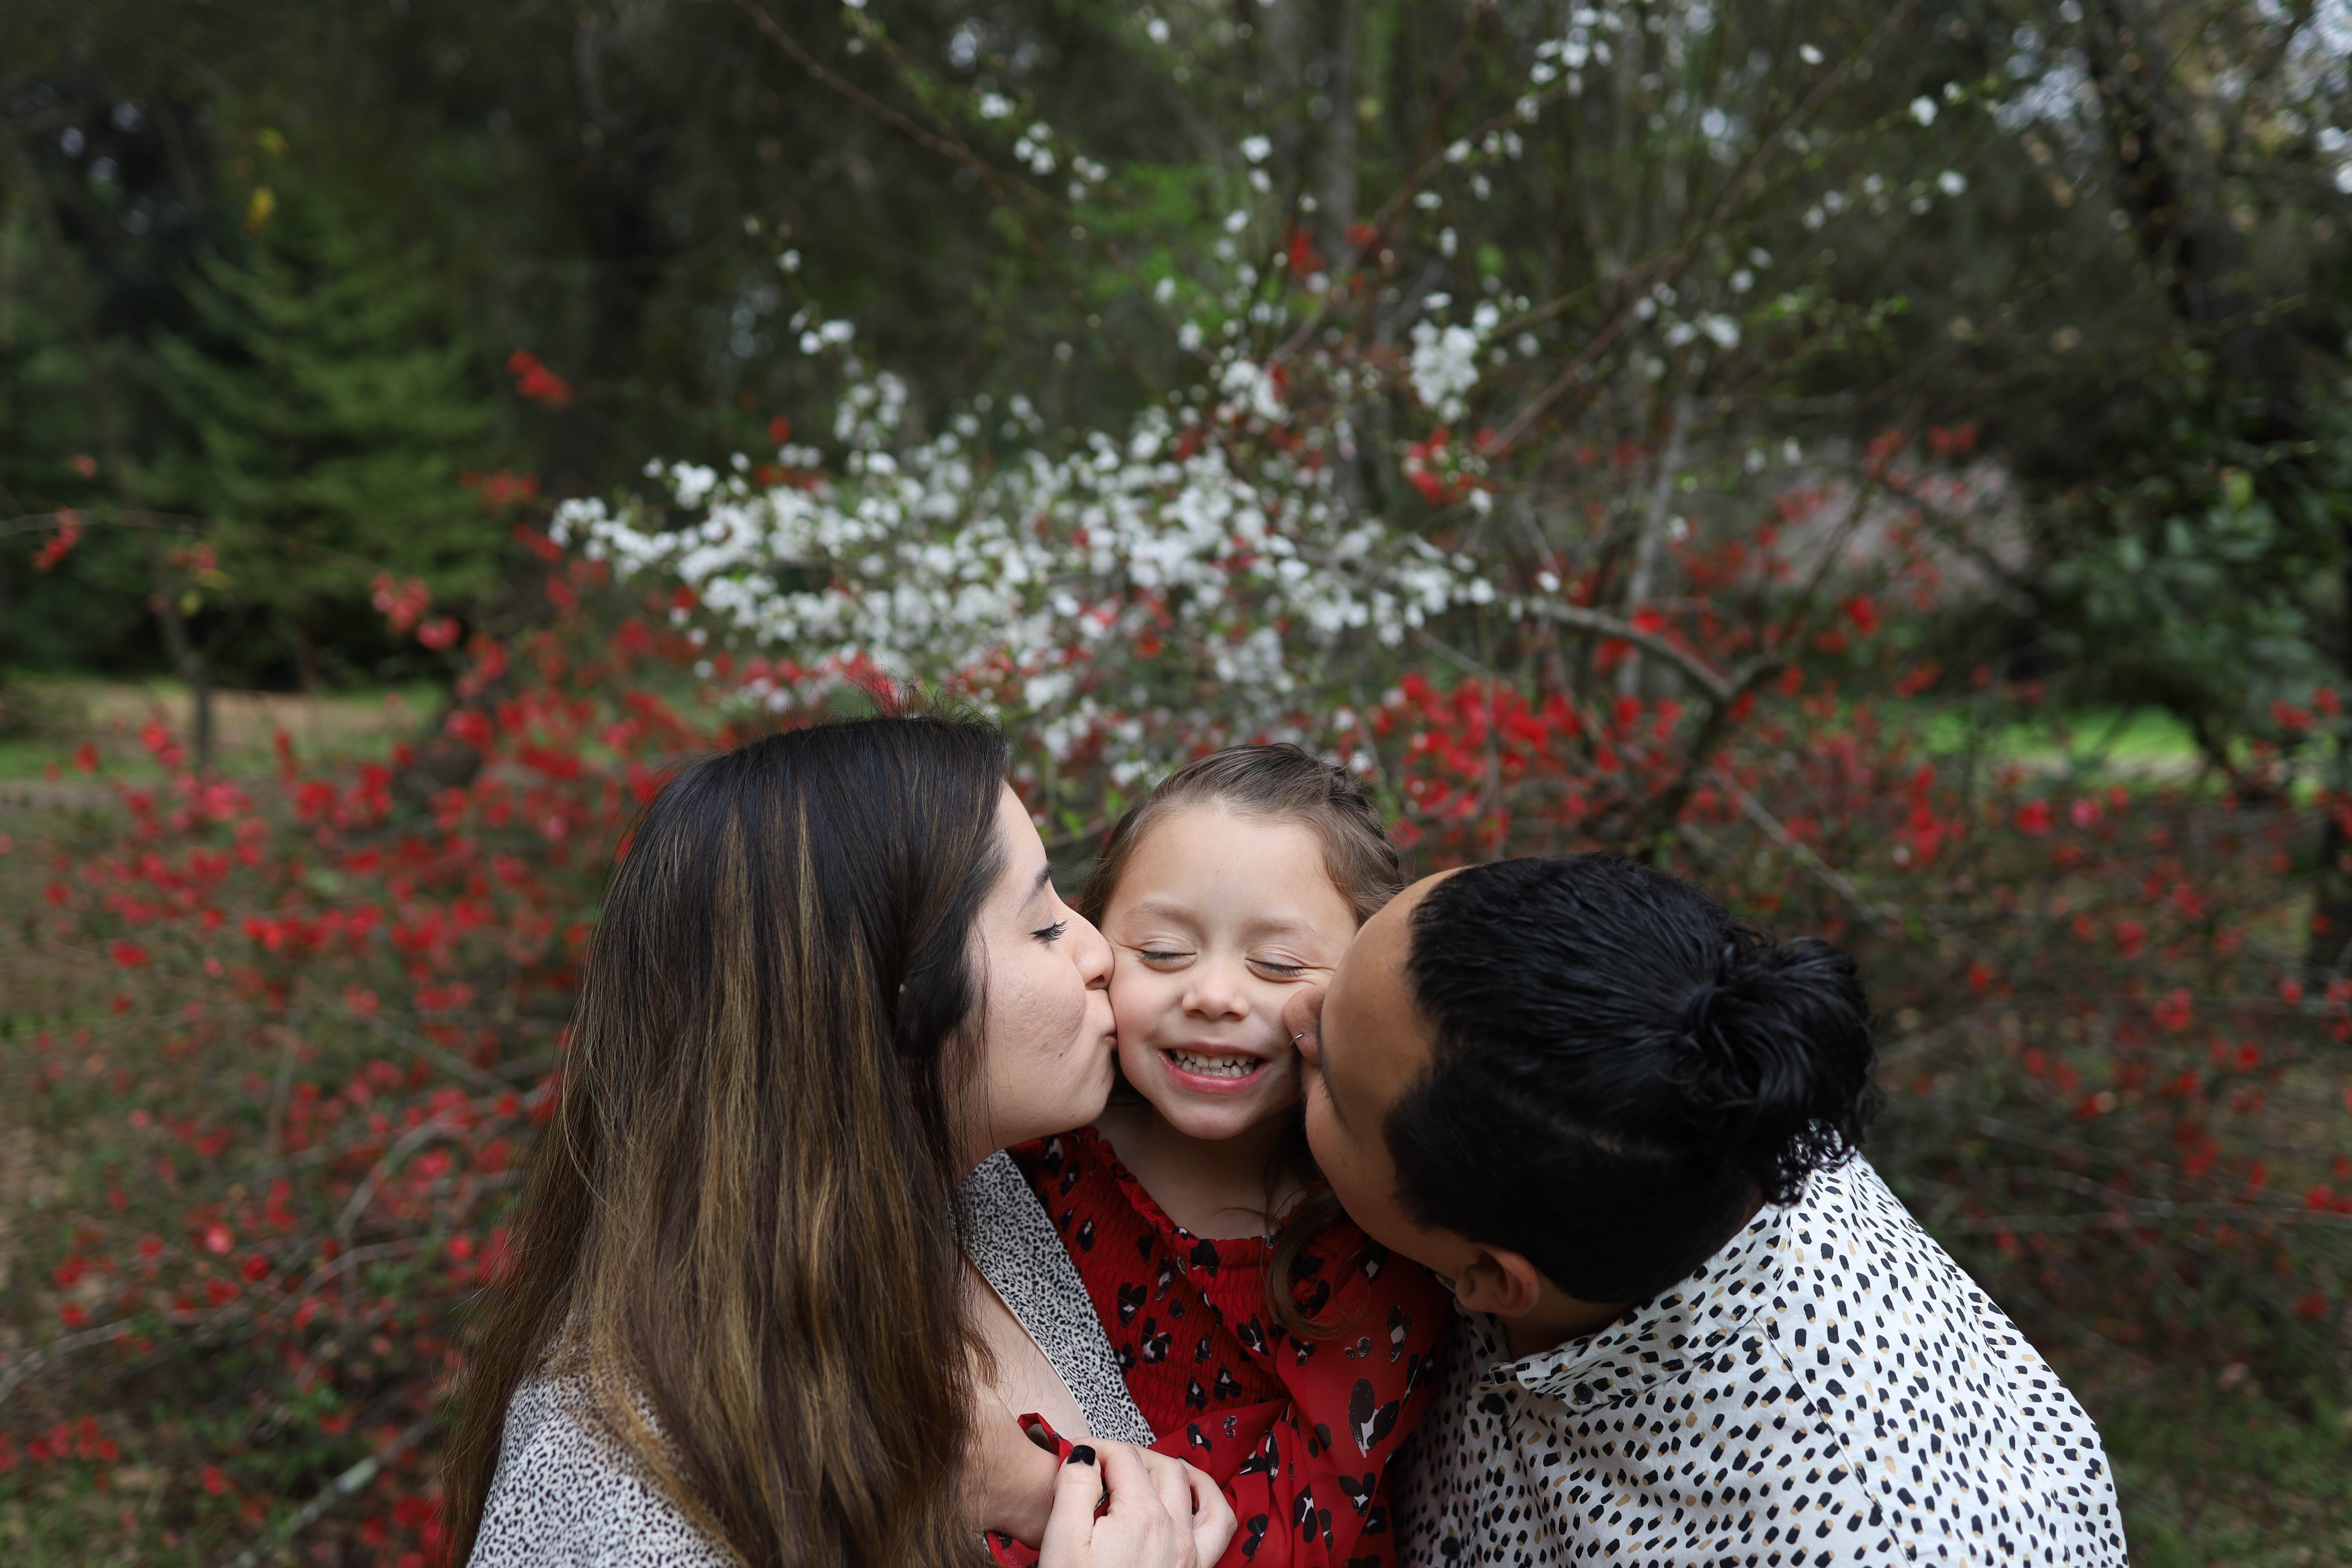 Penny being kissed on the cheek by her parents